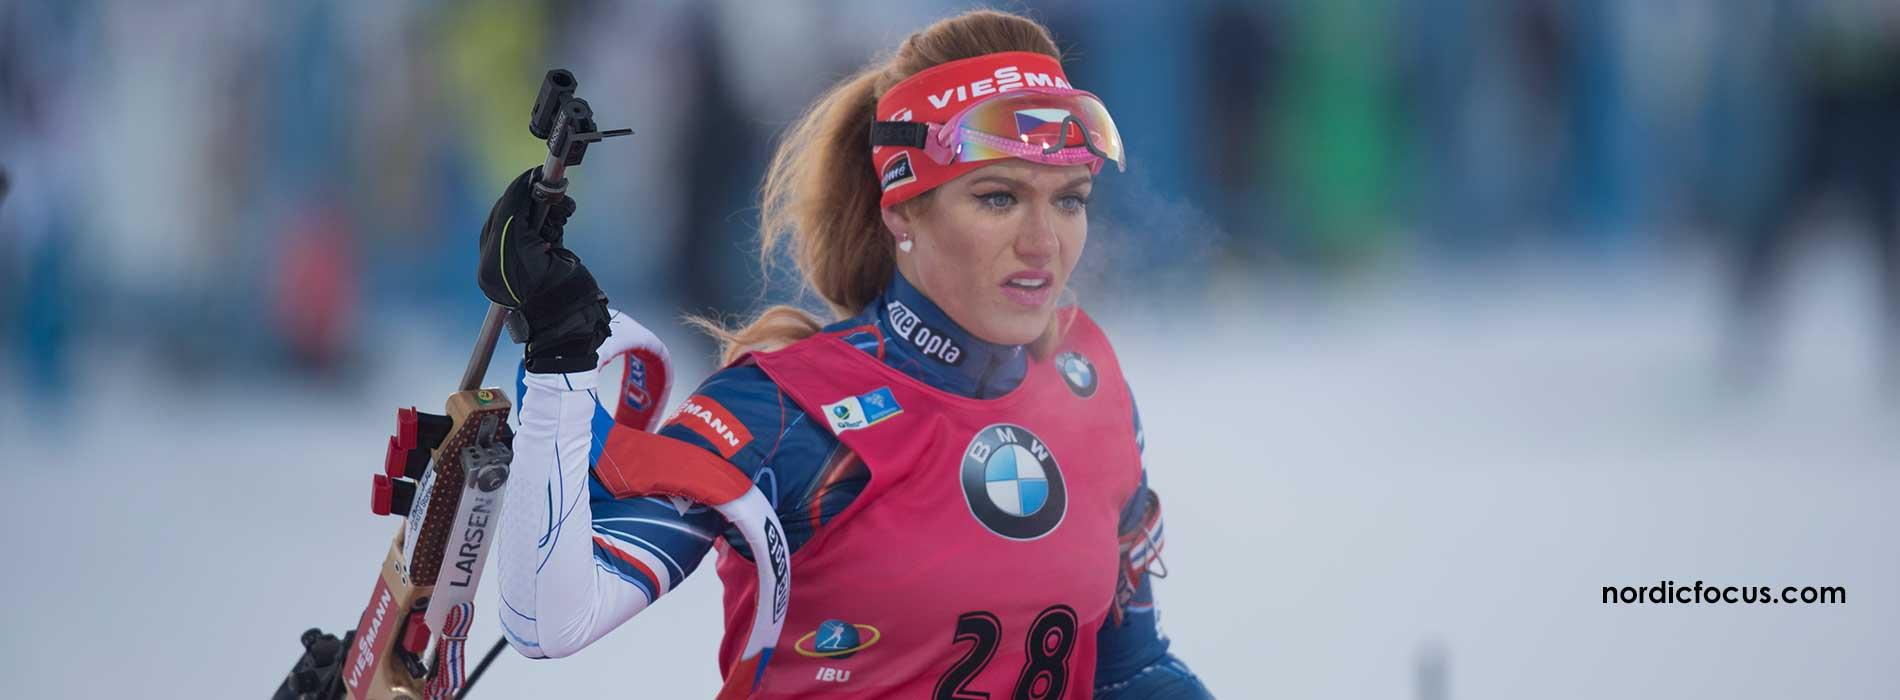 biathlon sprint damen heute